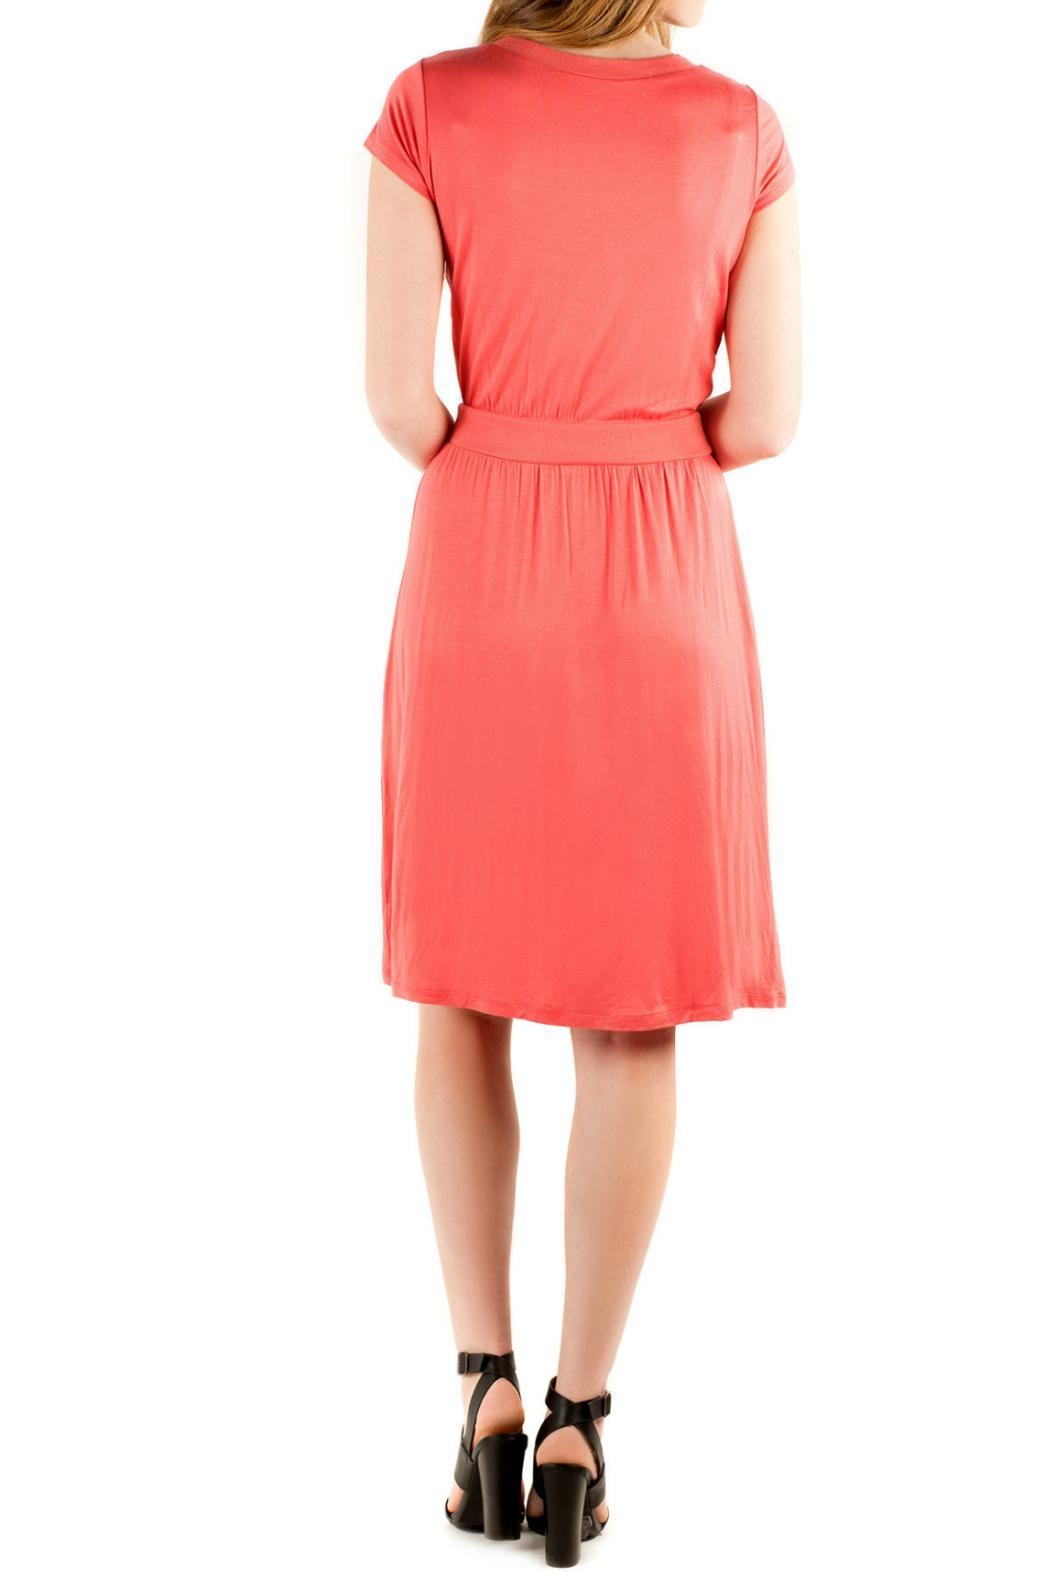 Downeast Basics Copacetic Dress Coral - Front Full Image